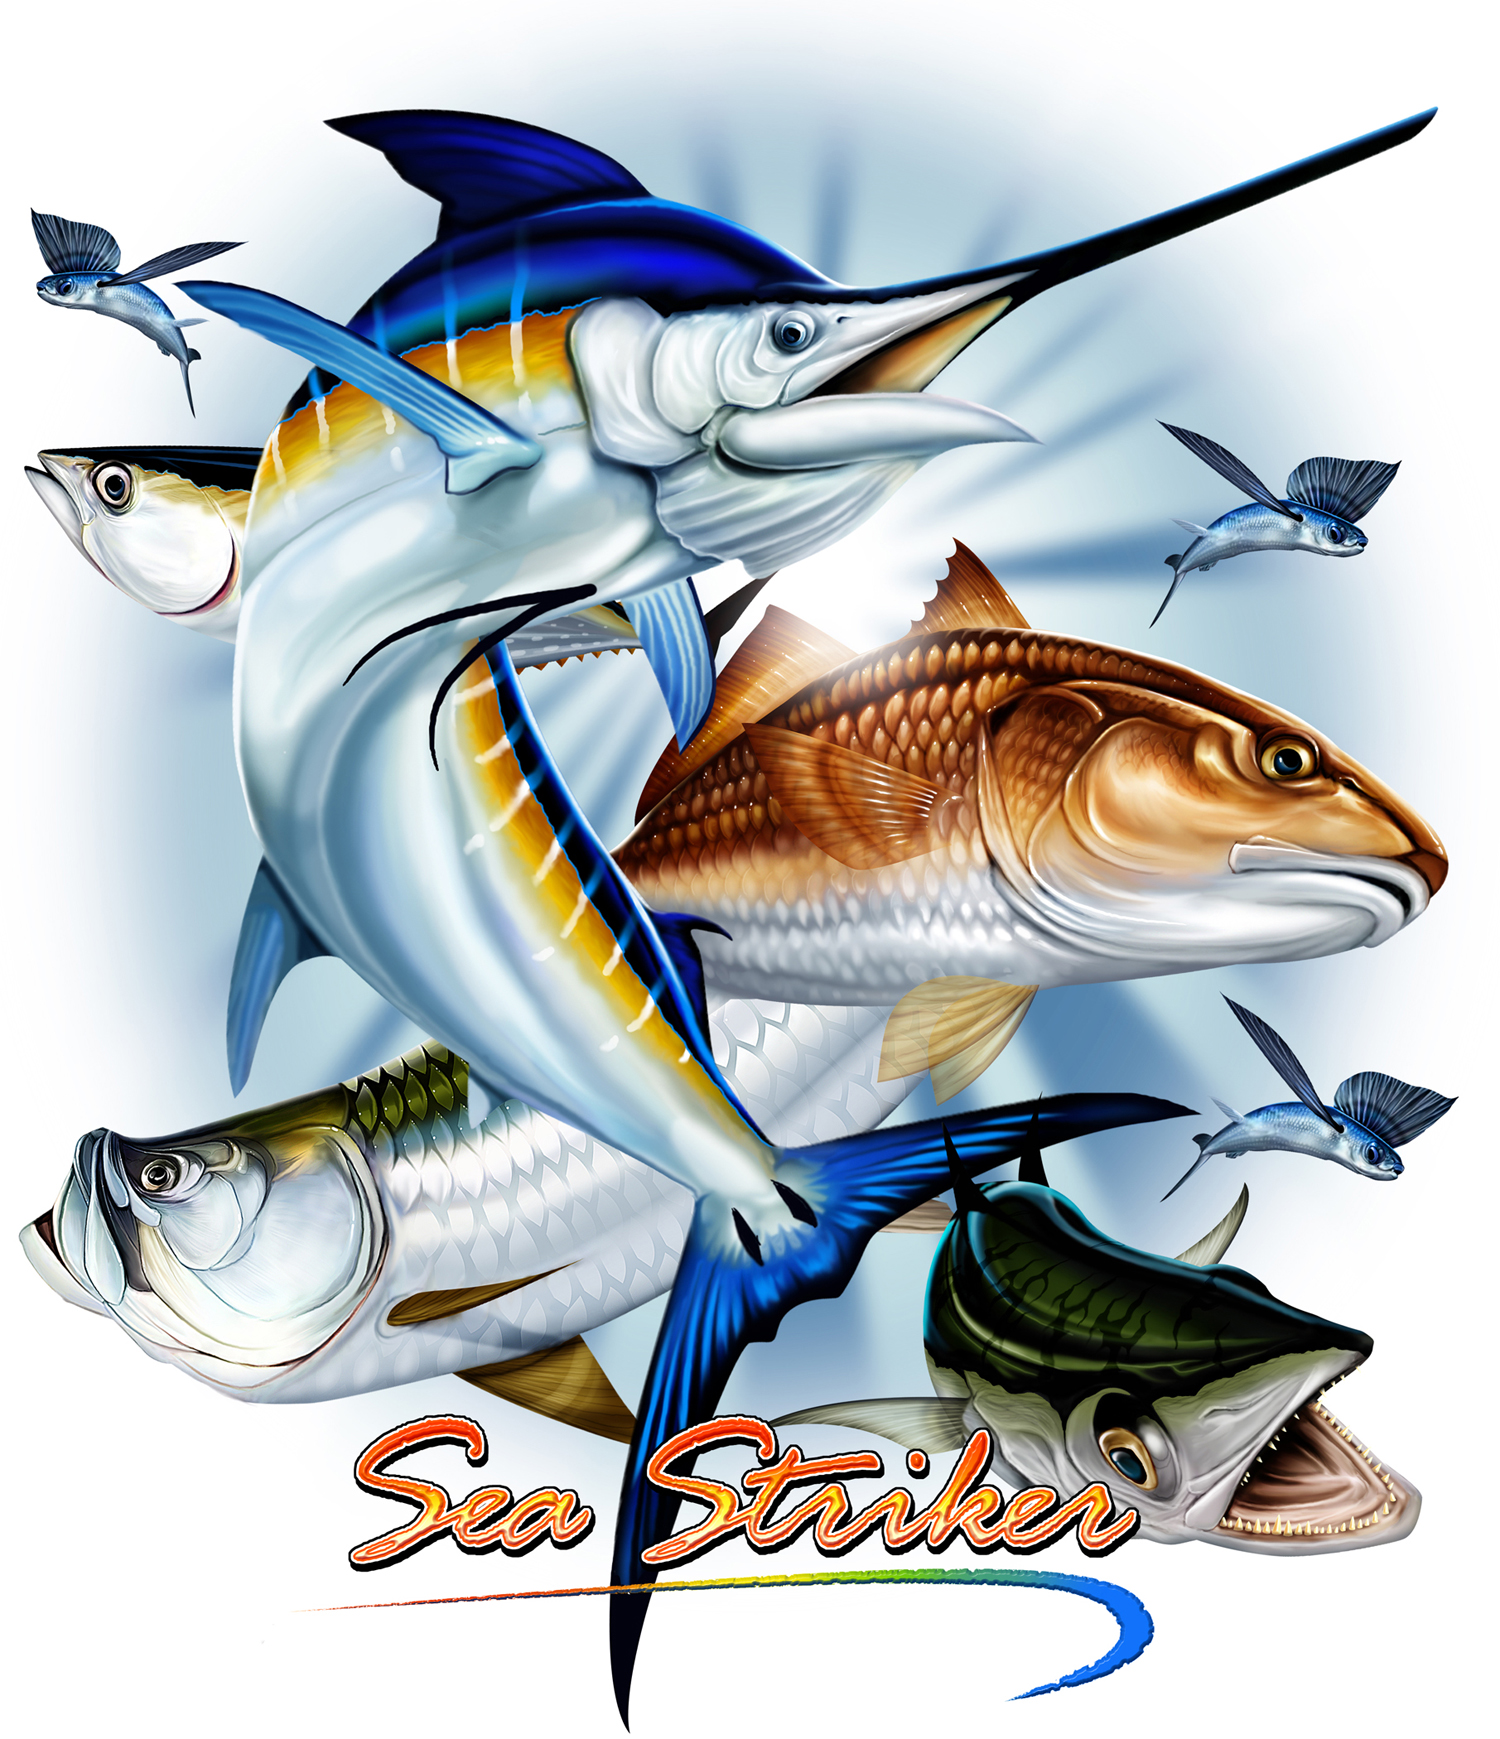 Our sponsors for Fishing companies looking to sponsor